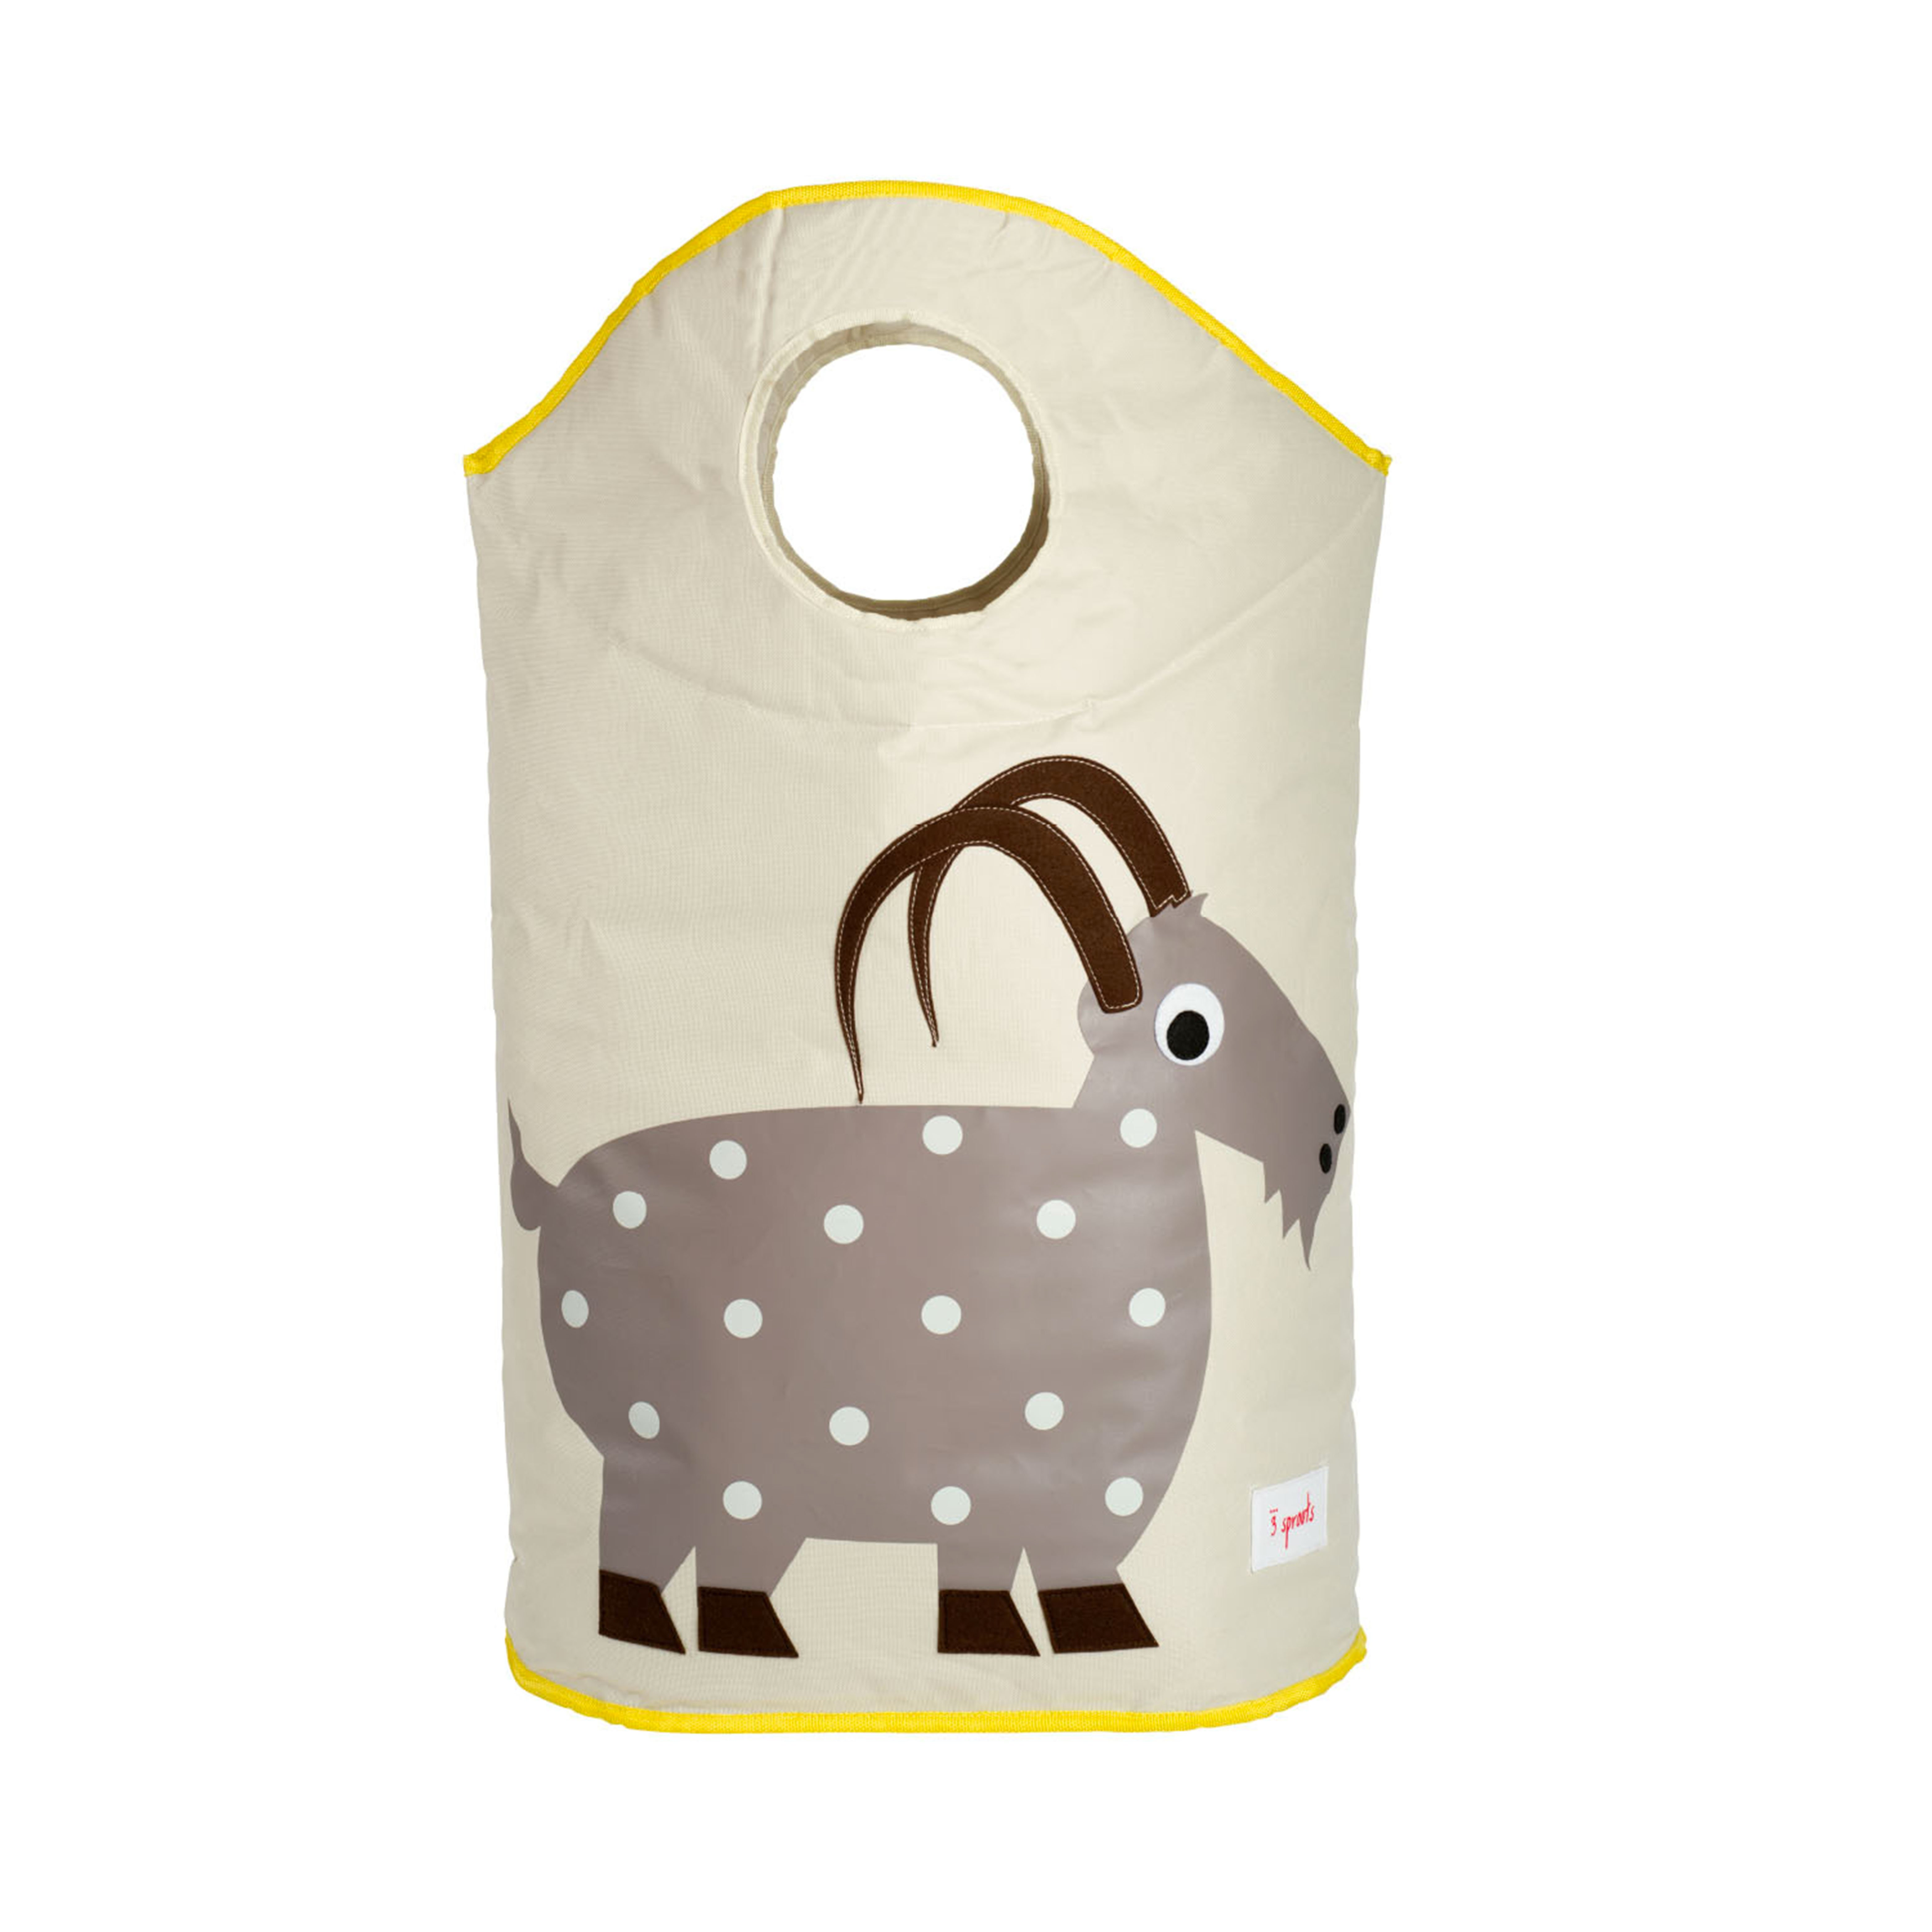 3 Sprouts - Laundry Hamper - Gray Goat